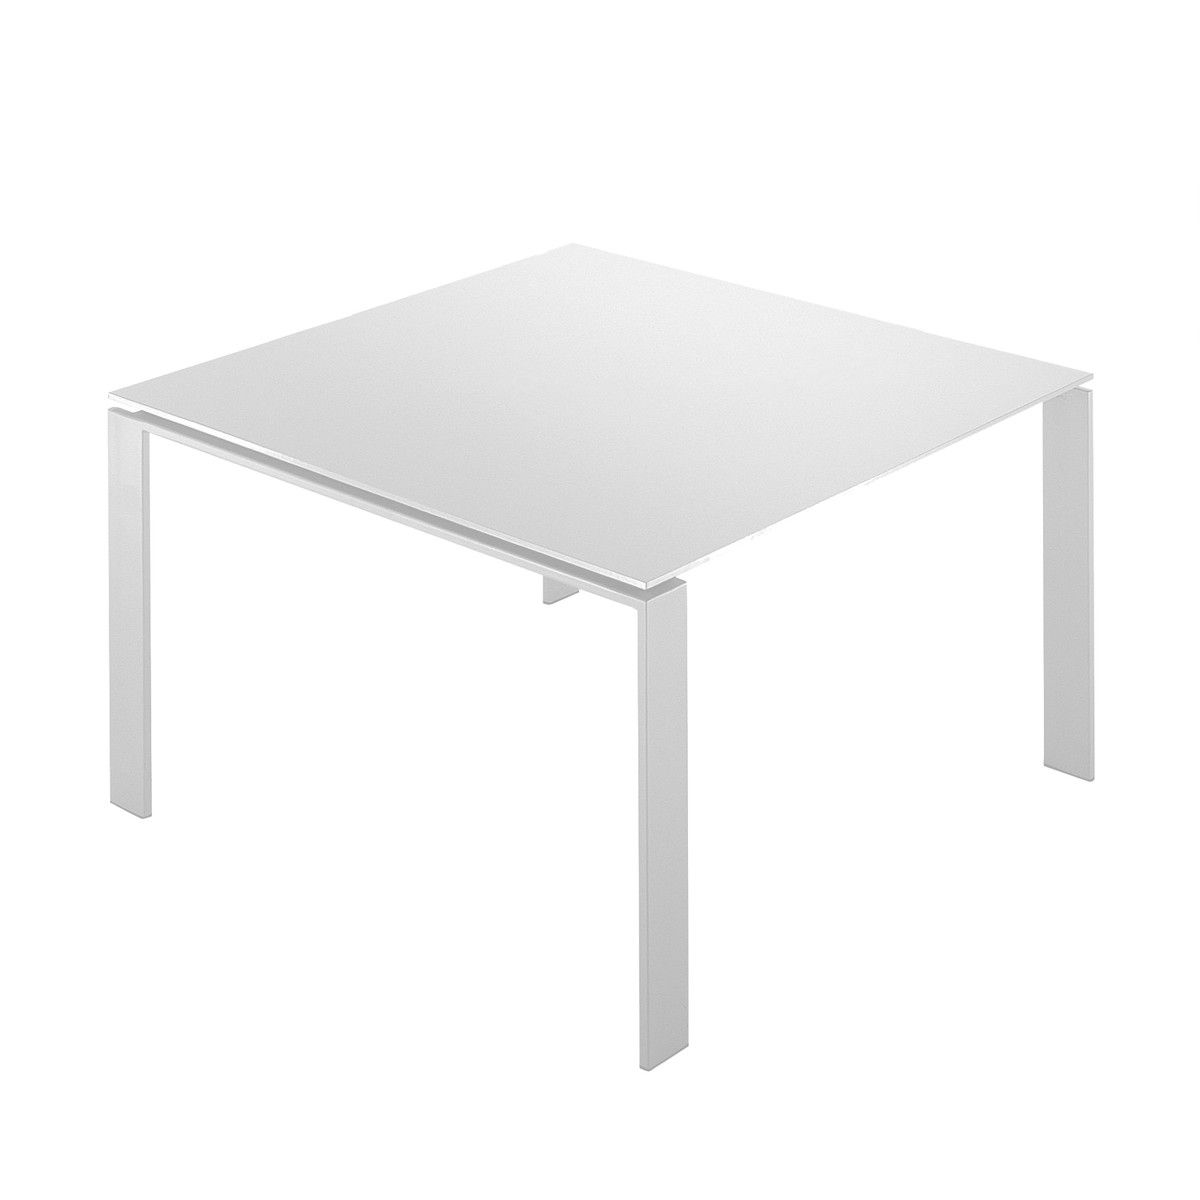 Wohndesign bilder mit shop kartell  four table  x  cm white  white  tables and dining